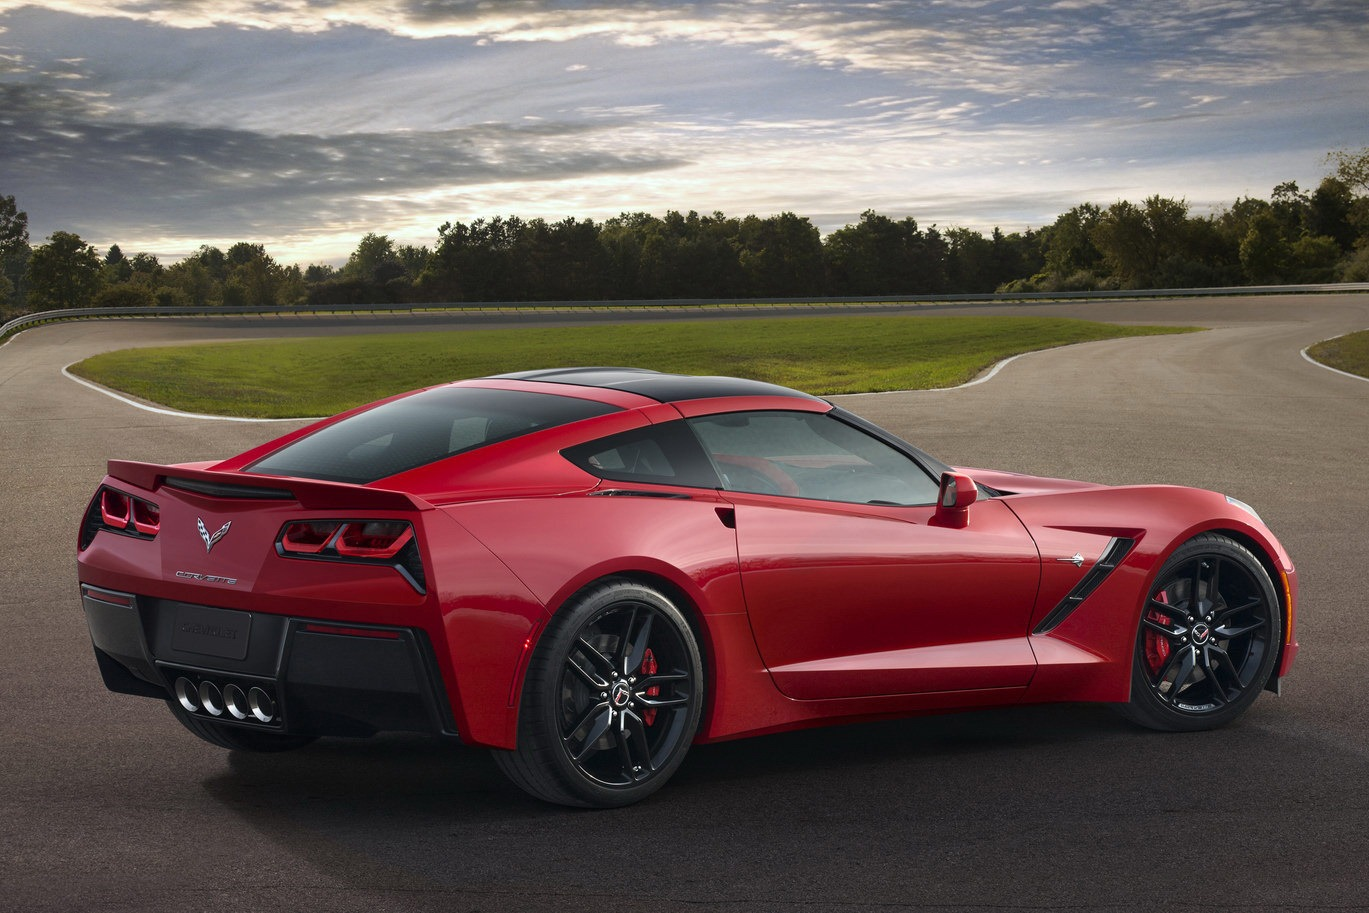 Chevrolet Corvette C7 Stingray Sports Cars